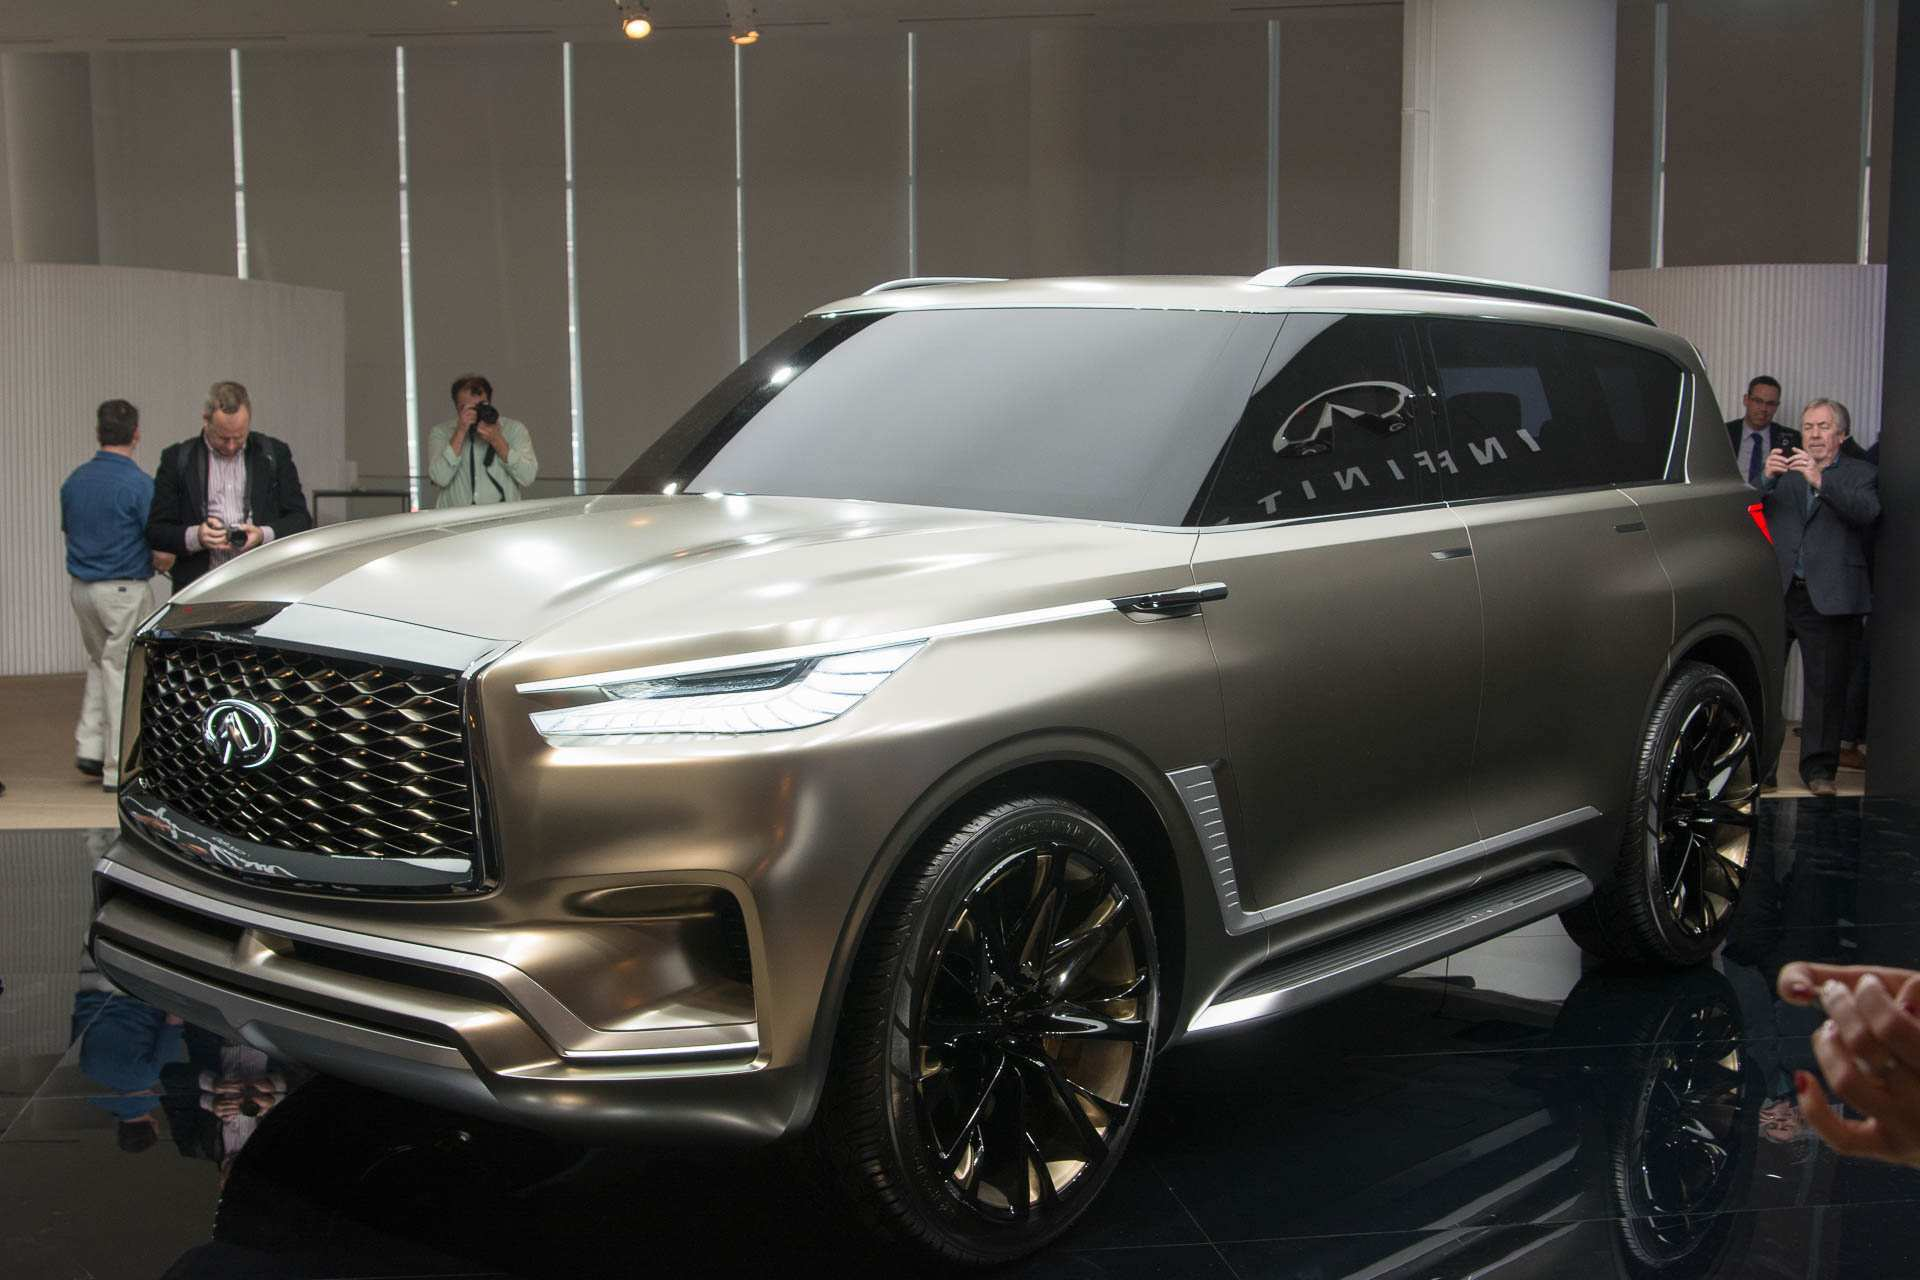 72 All New Infiniti Qx80 2020 Interior Specs And Review